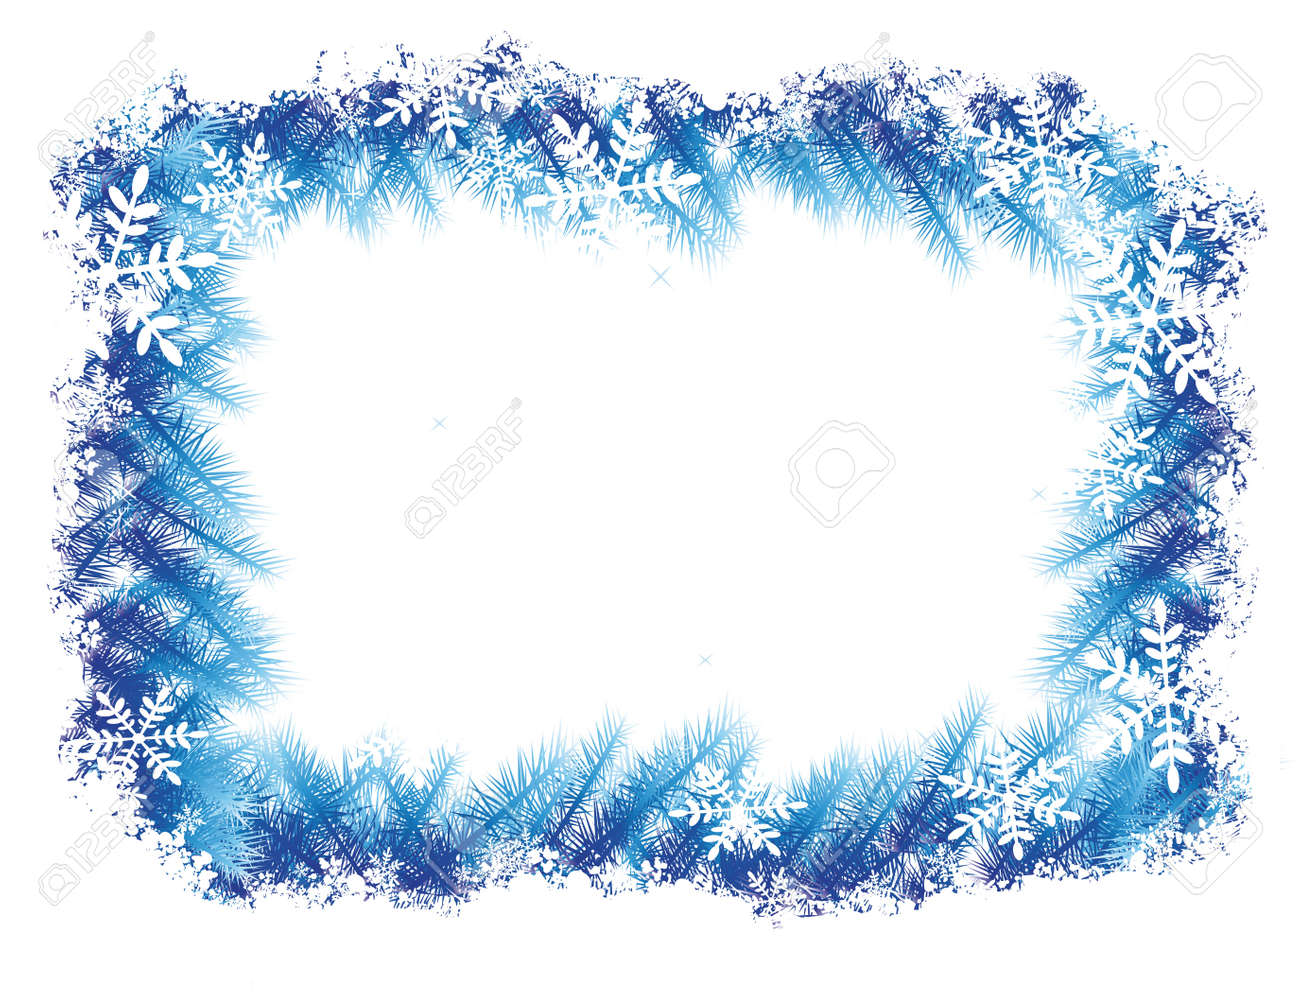 Winter Frame Stock Photo, Picture And Royalty Free Image. Image 4257803.